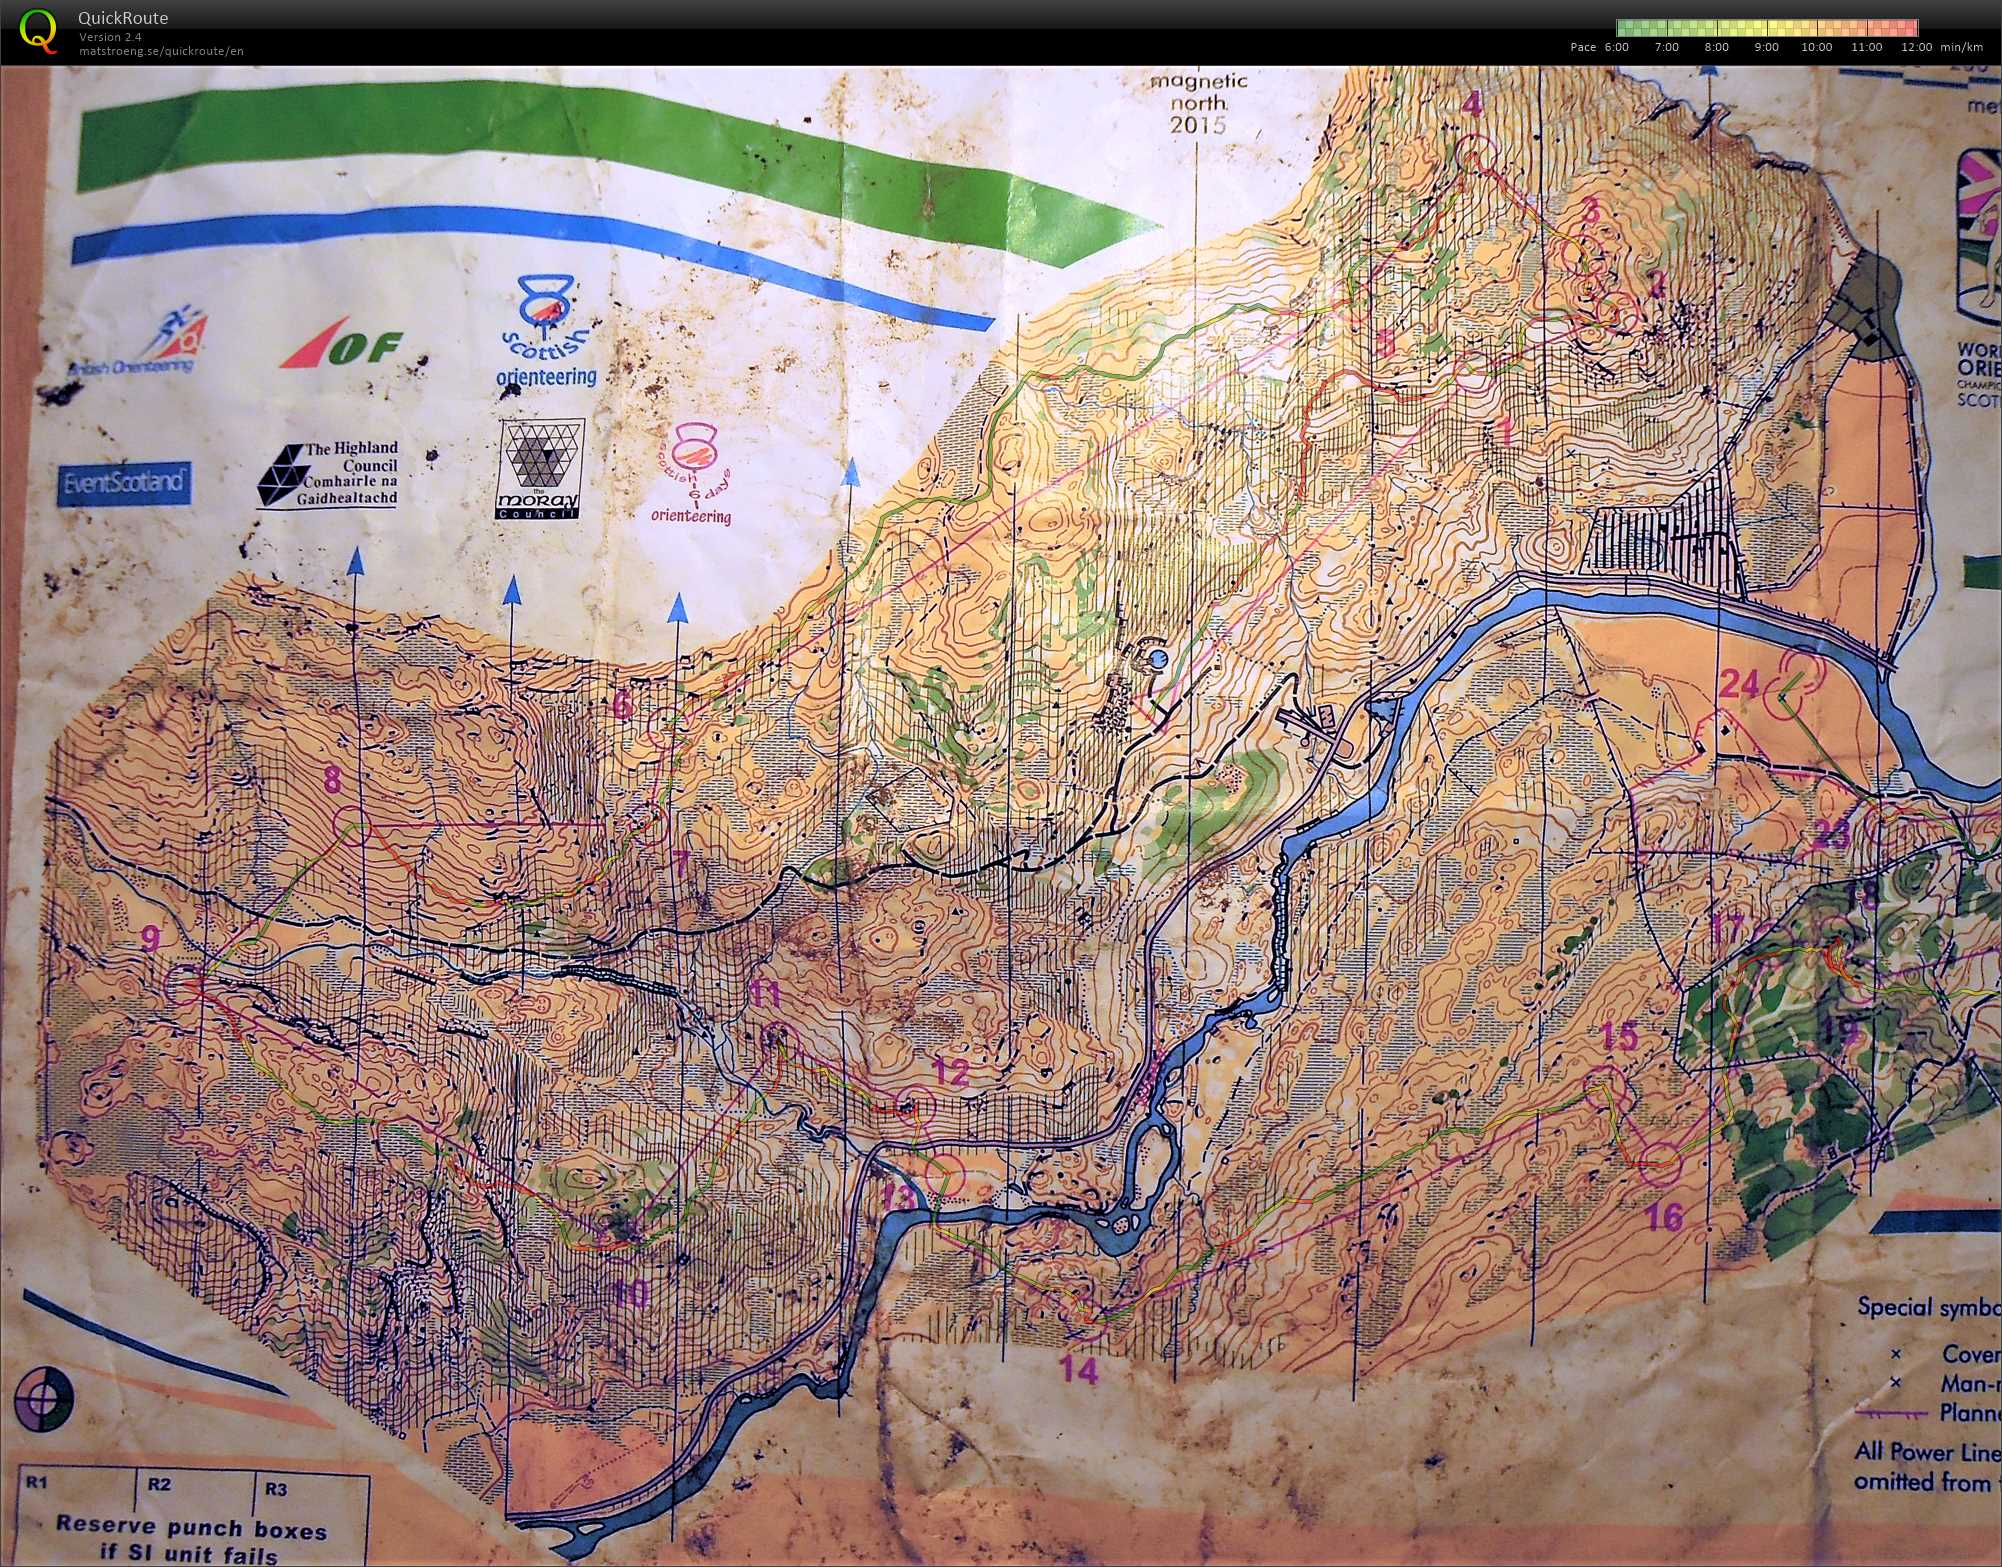 Scottish 6 Days - Day 2 (03/08/2015)